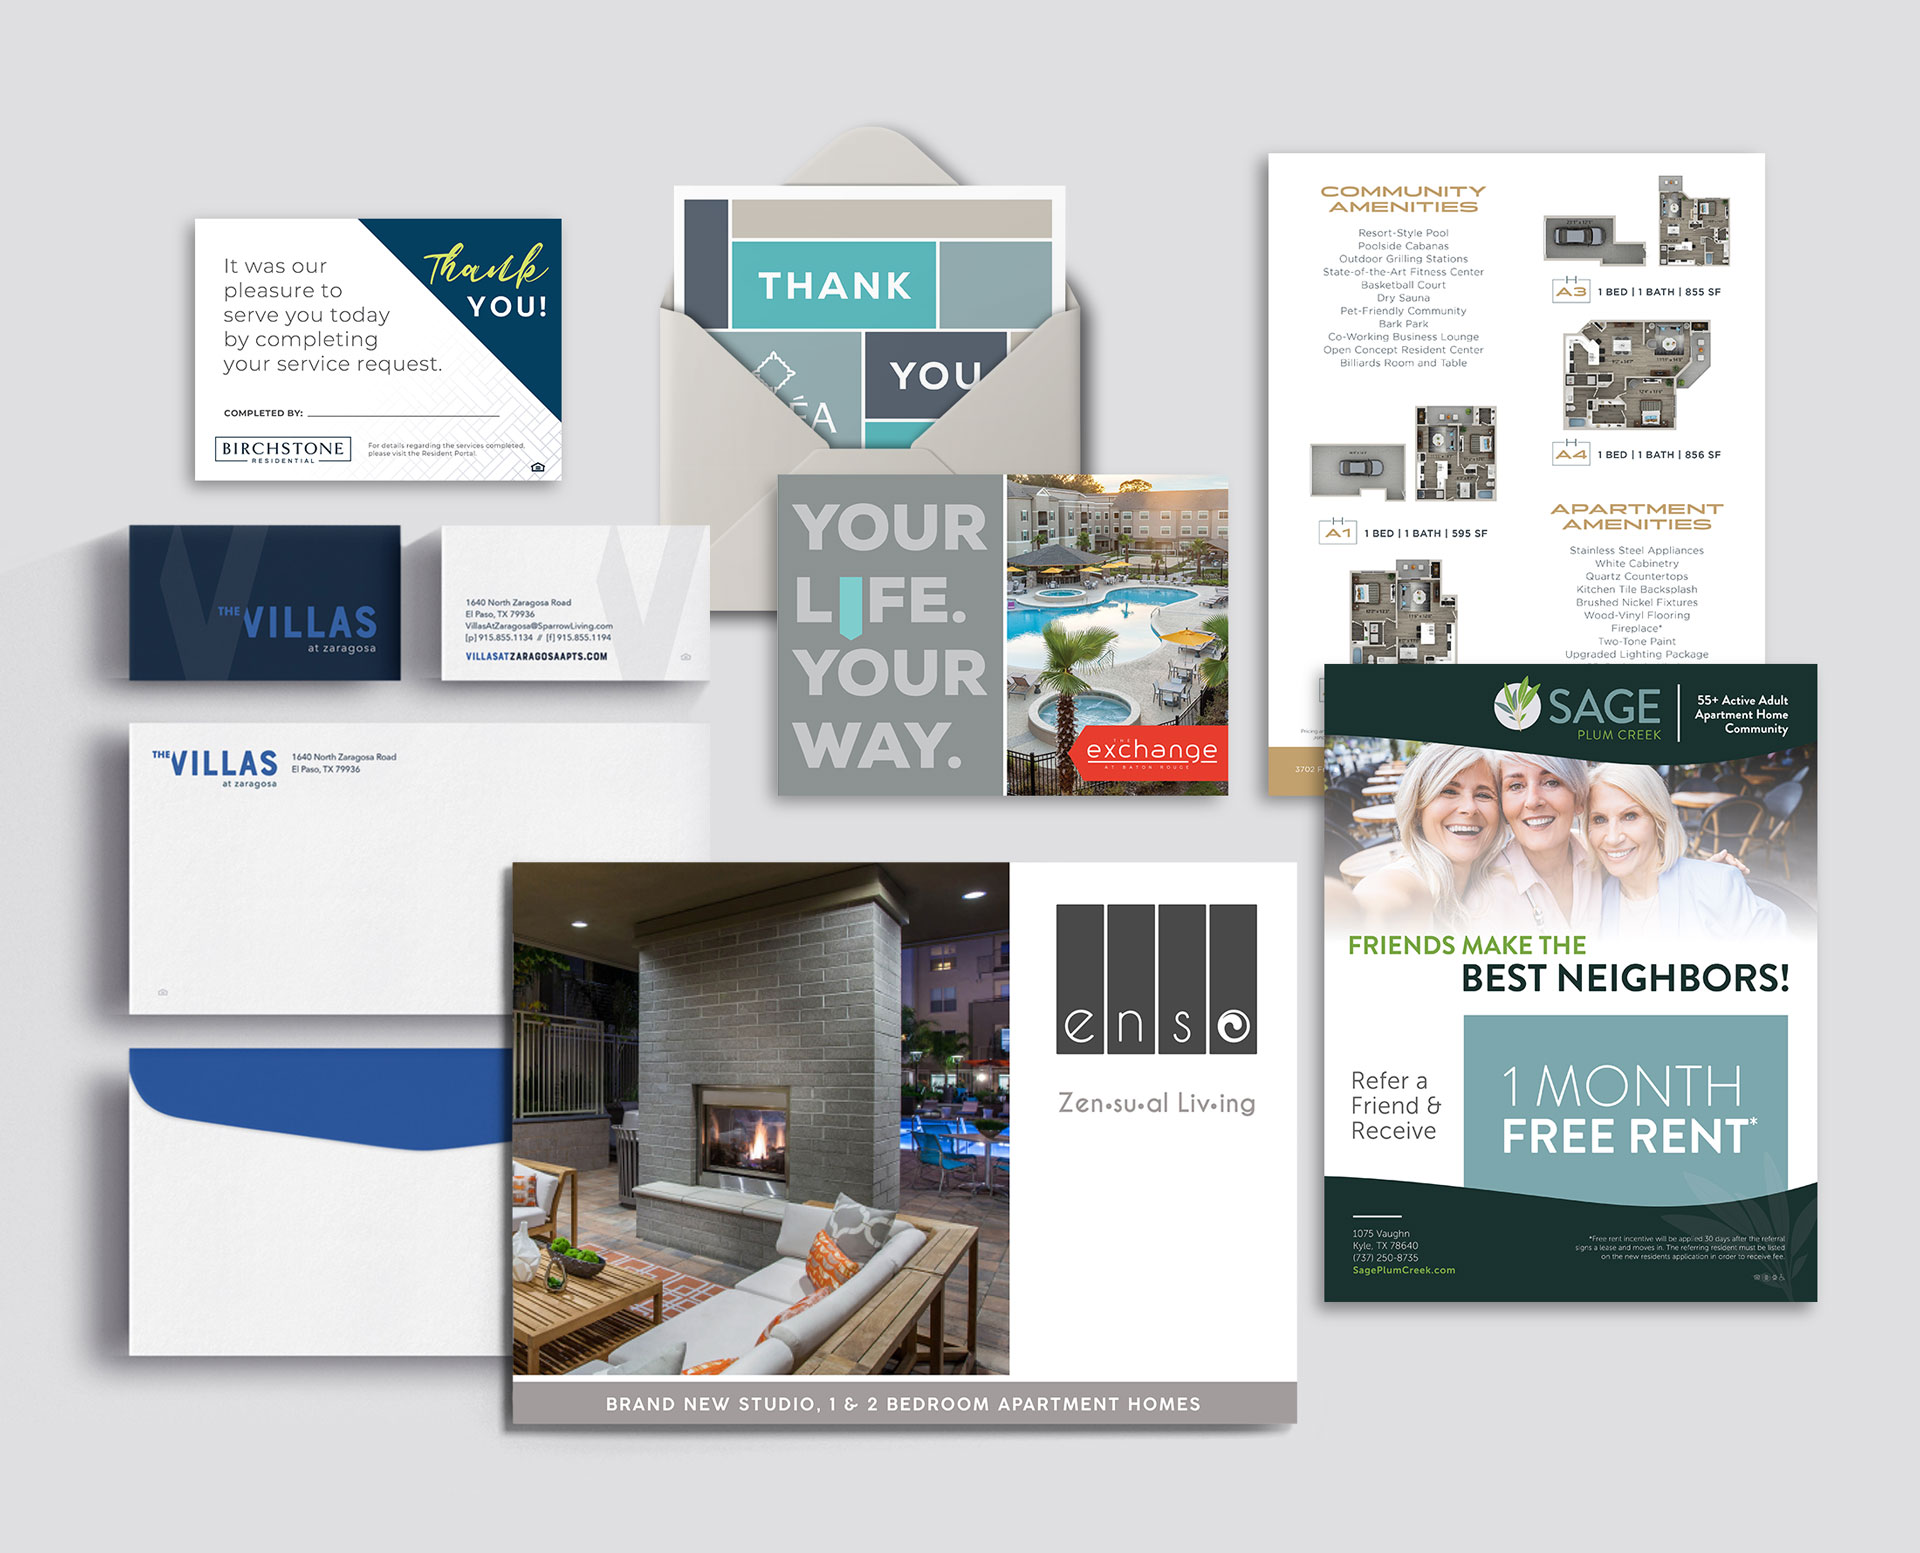 Marketing Collateral Must-Haves for Multifamily Branding